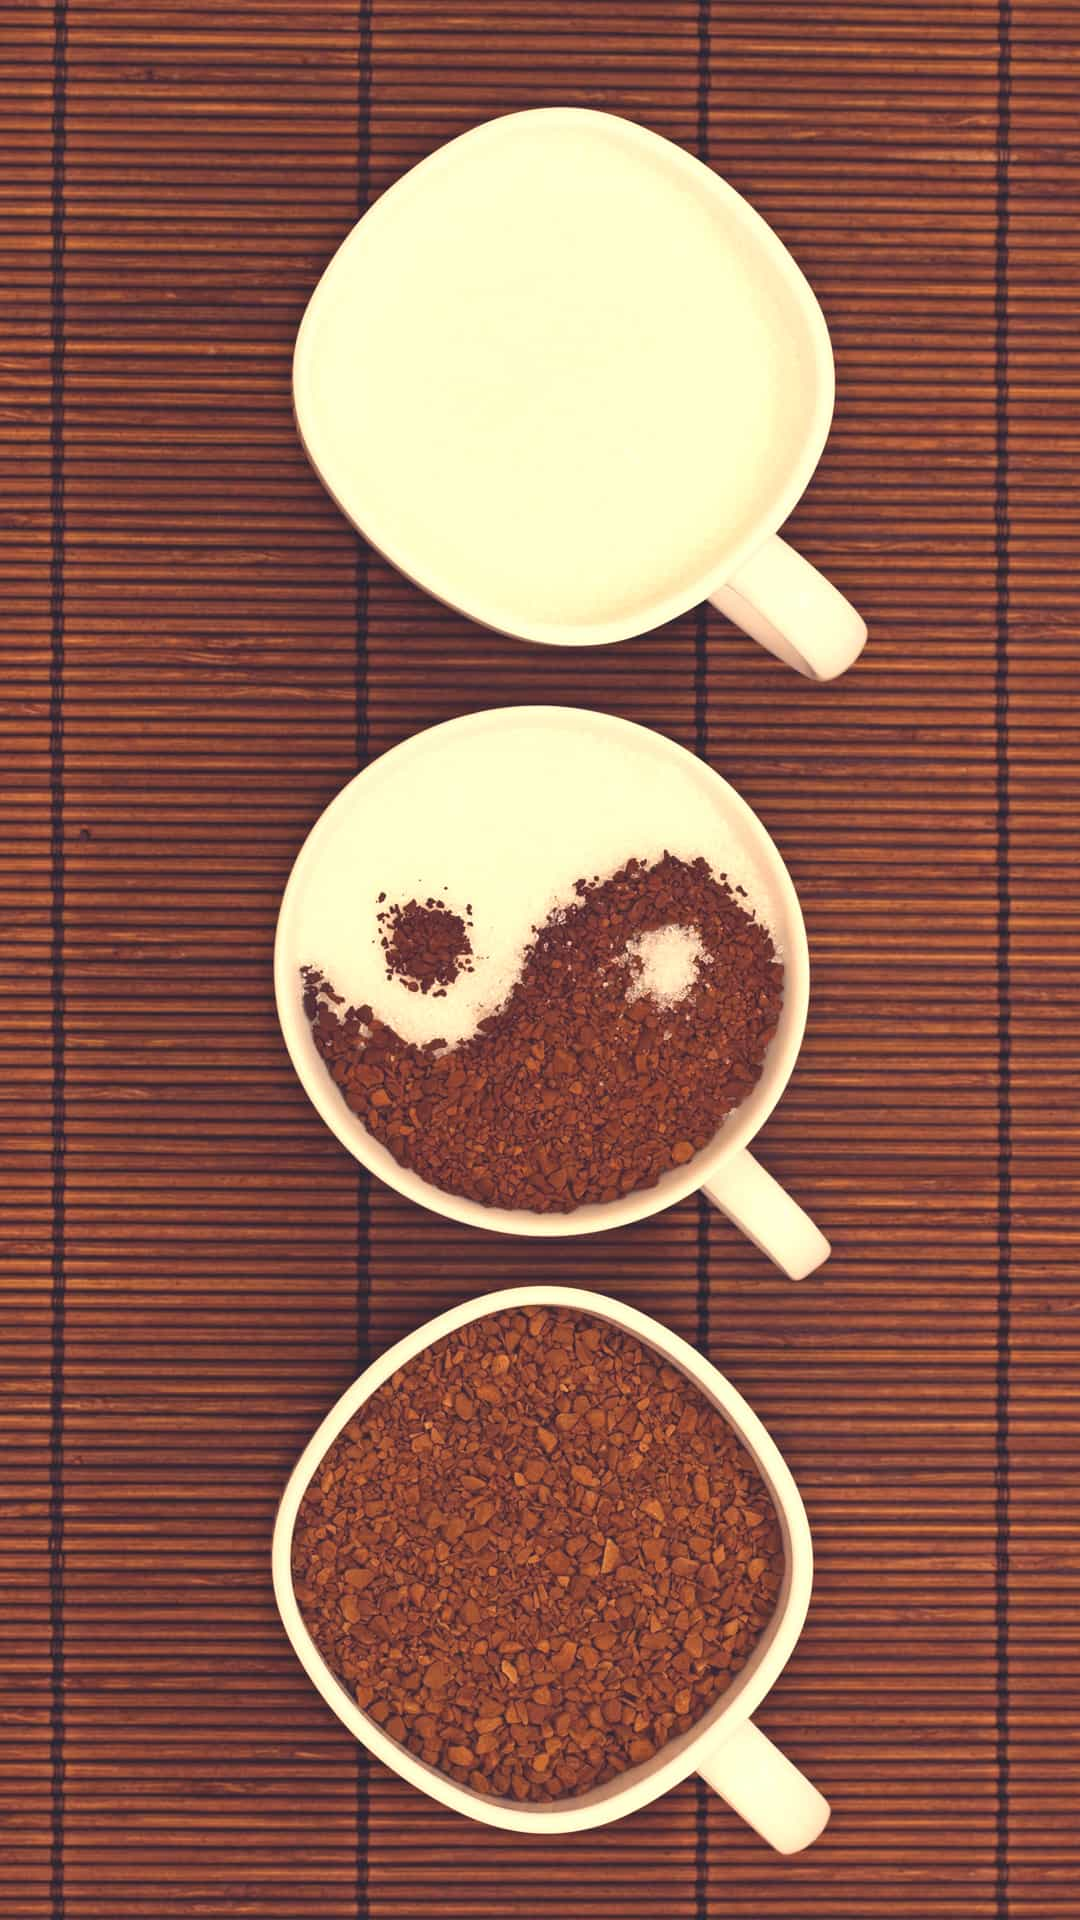 Vintage Light Ying Yang Coffee Cups Android Wallpaper